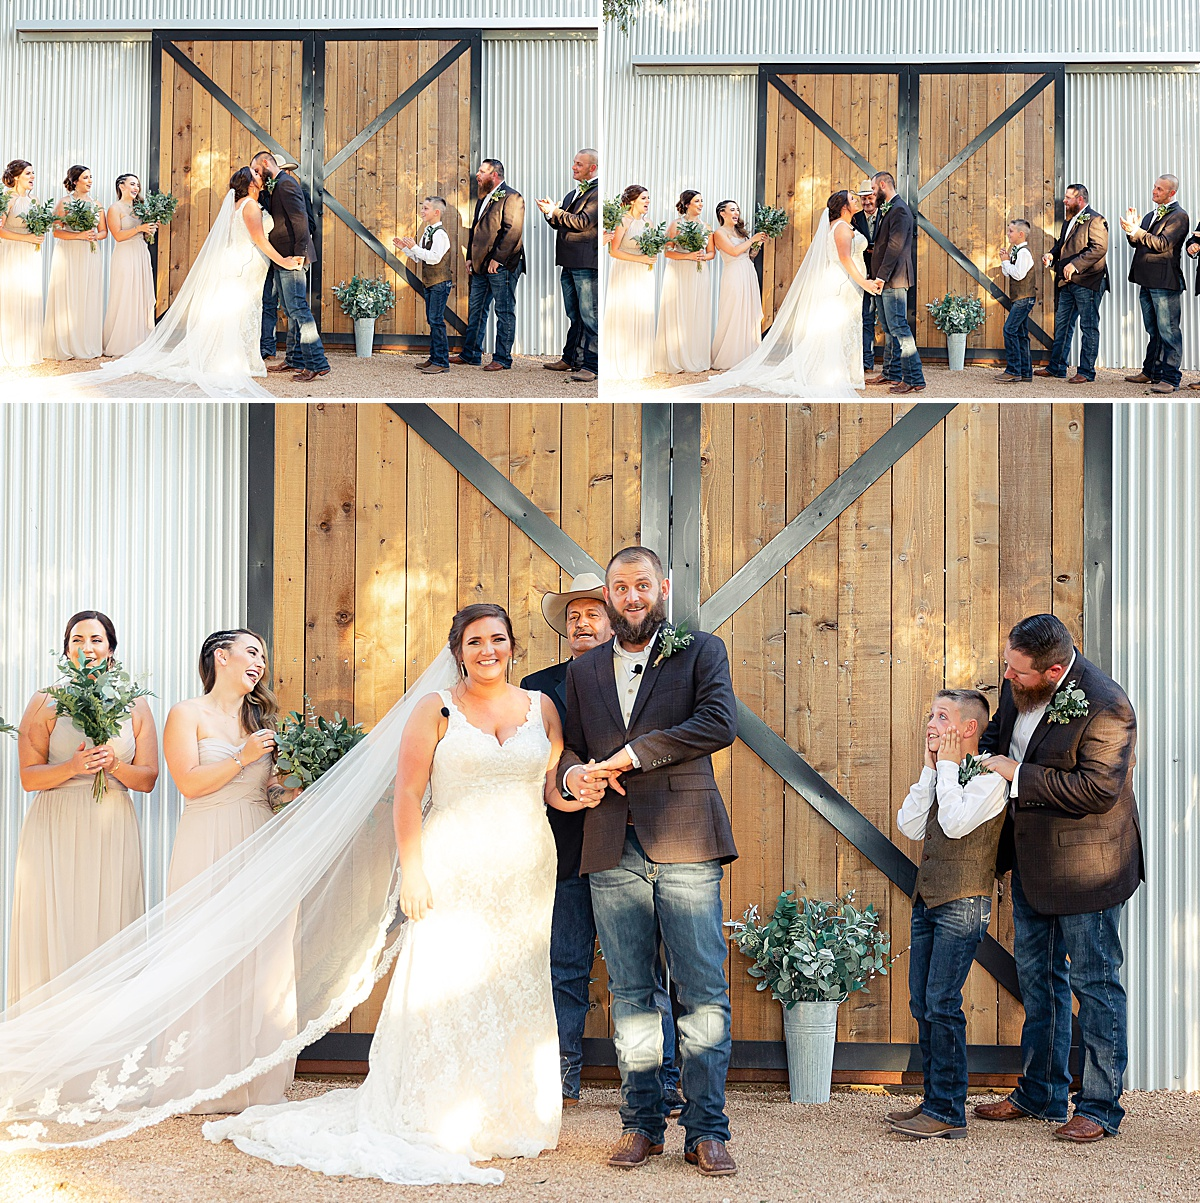 Rustic-Texas-Wedding-Hollow-Creek-Ranch-Carly-Barton-Photography_0121.jpg